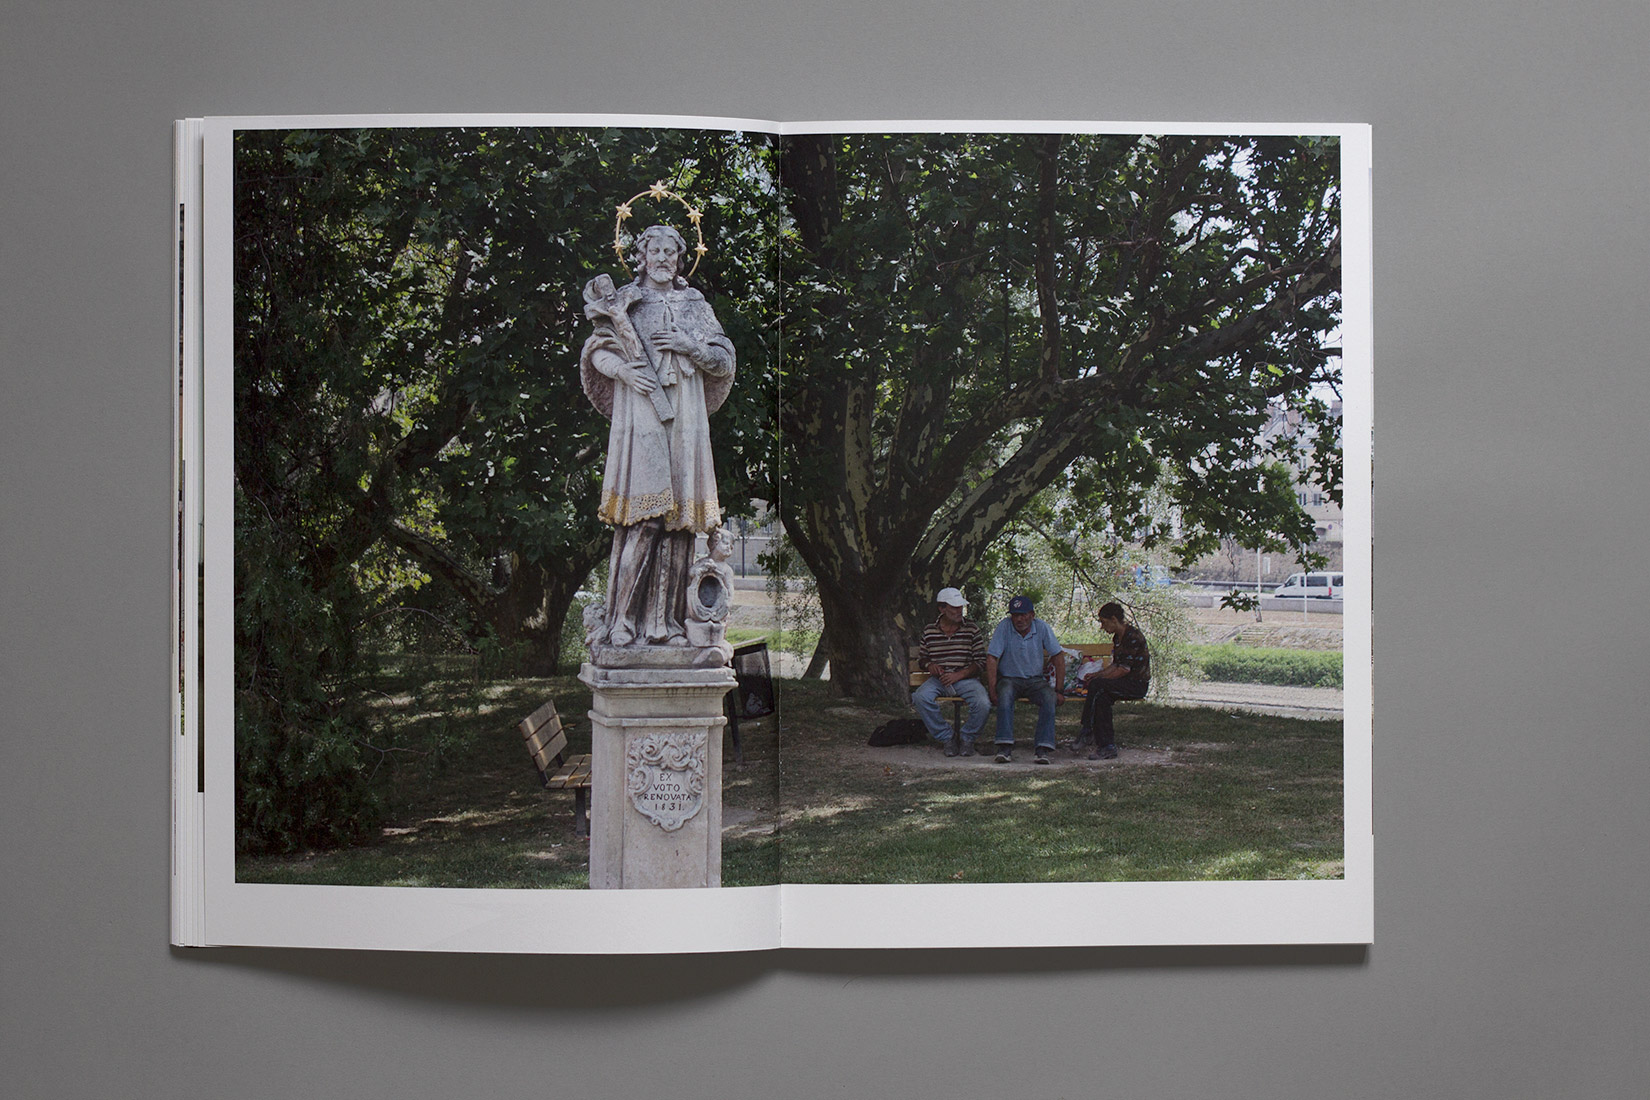 Study trip, book, Győr, statue, christ, bench, tree